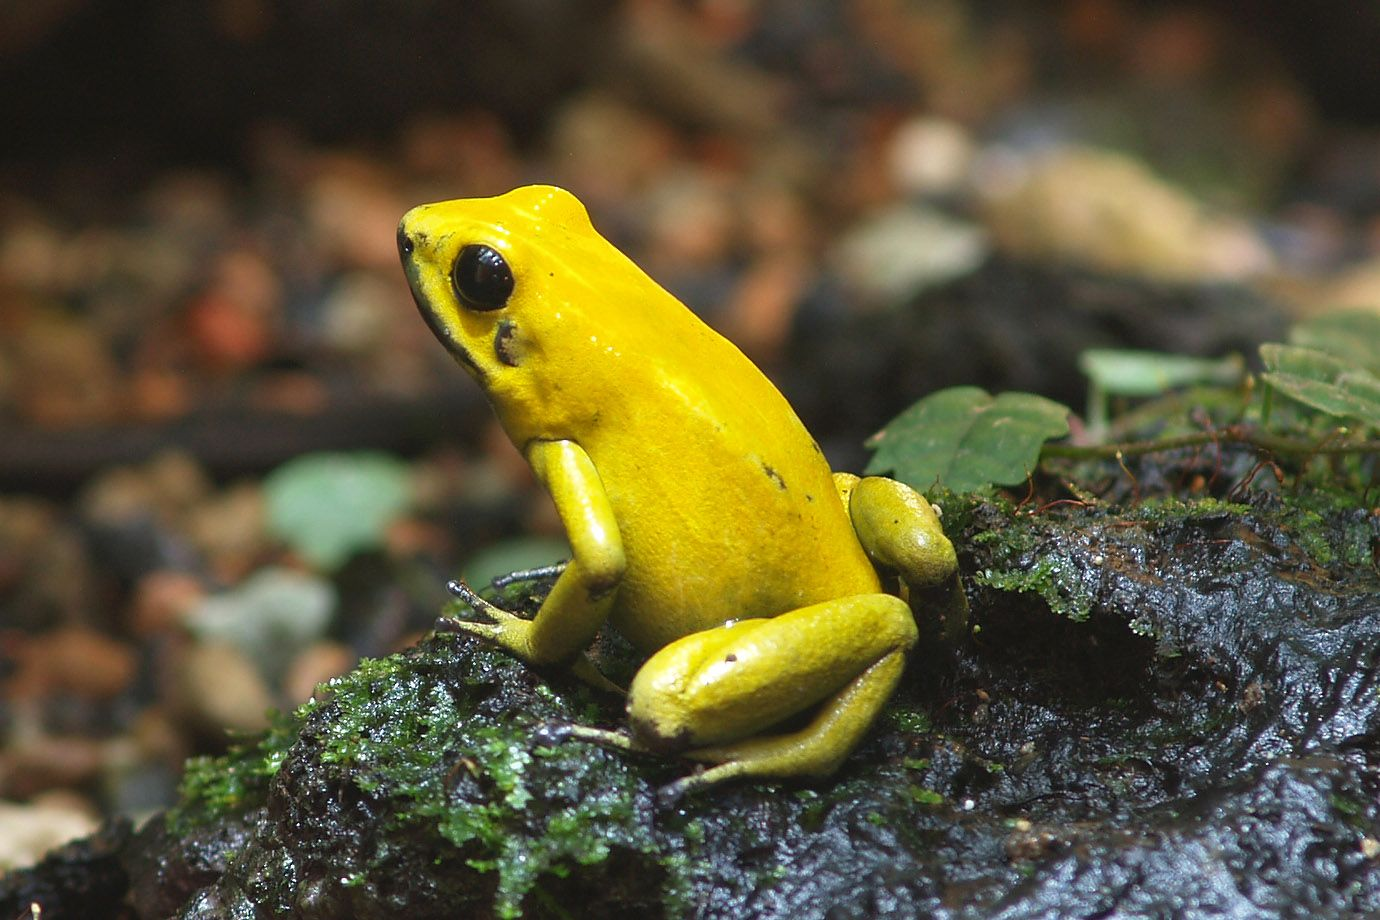 Poison Dart Frog, also named Dendrobate